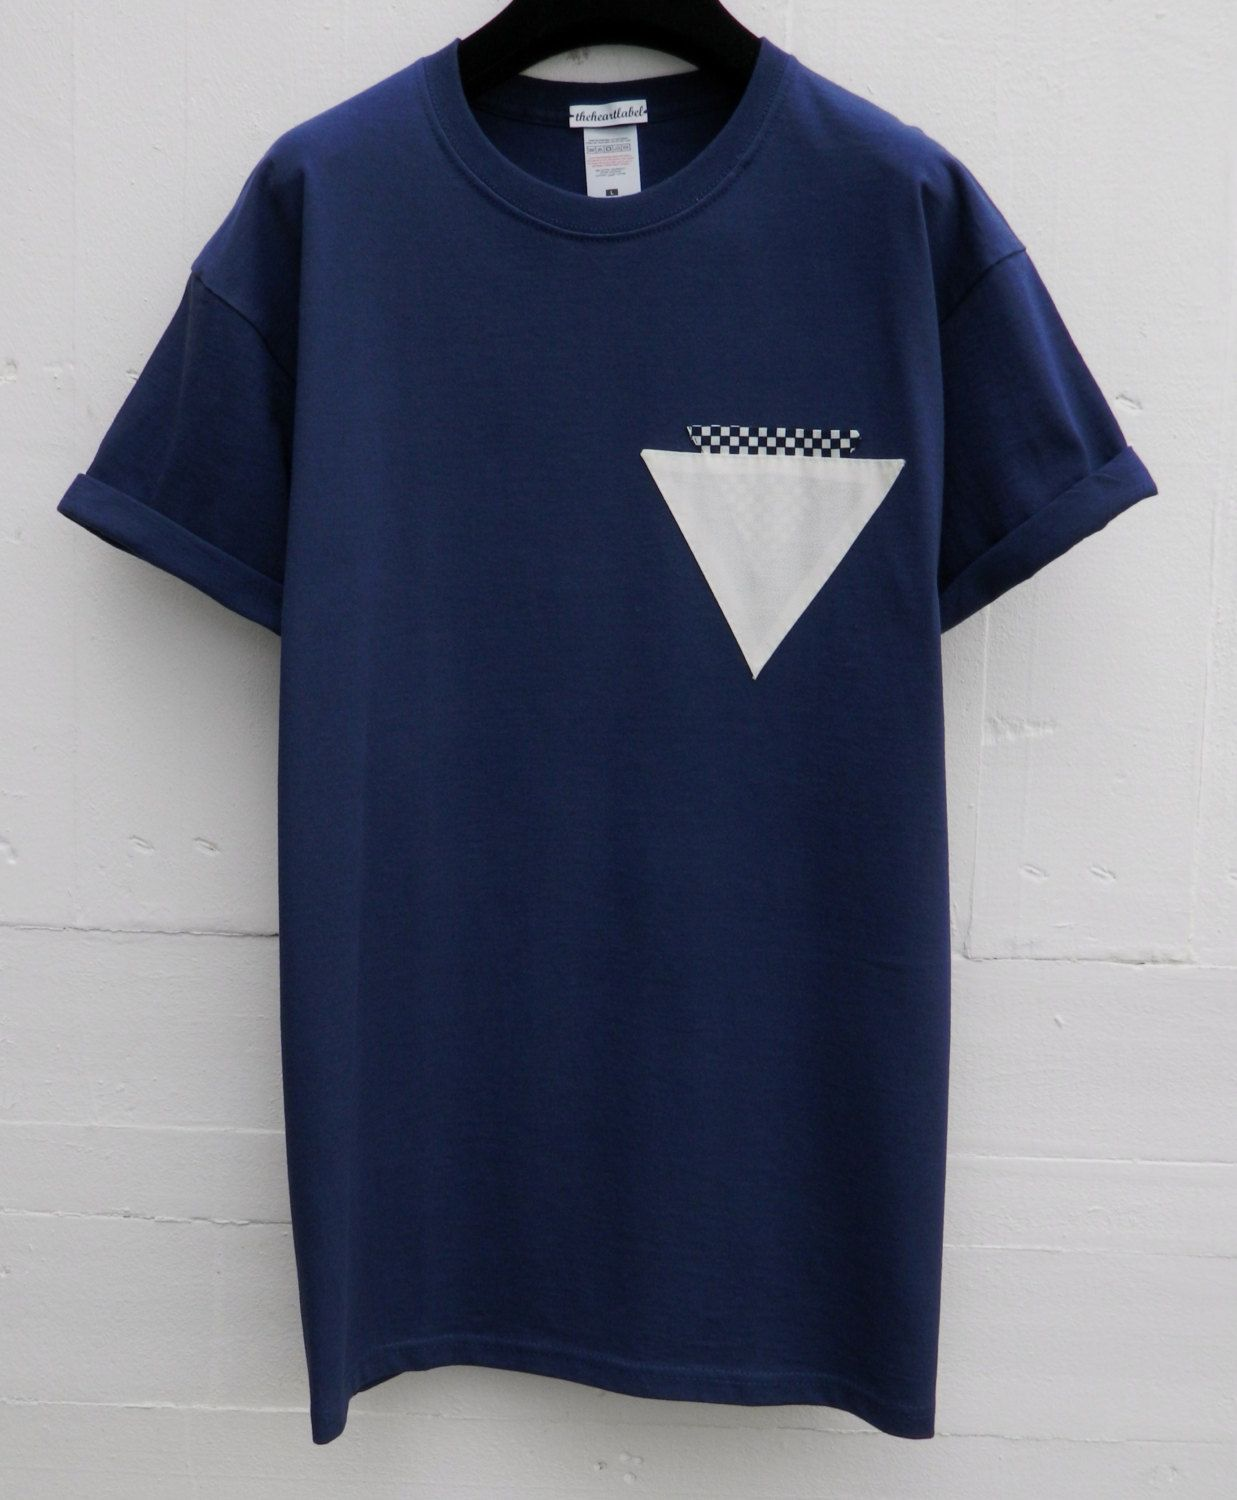 Design your own ethical t shirt - Men S Triangle Checkers Pocket In Pocket Pattern Navy Pocket T Shirt Men S T Shirt Pocket Tee Menswear Uk Custom Made T Shirts